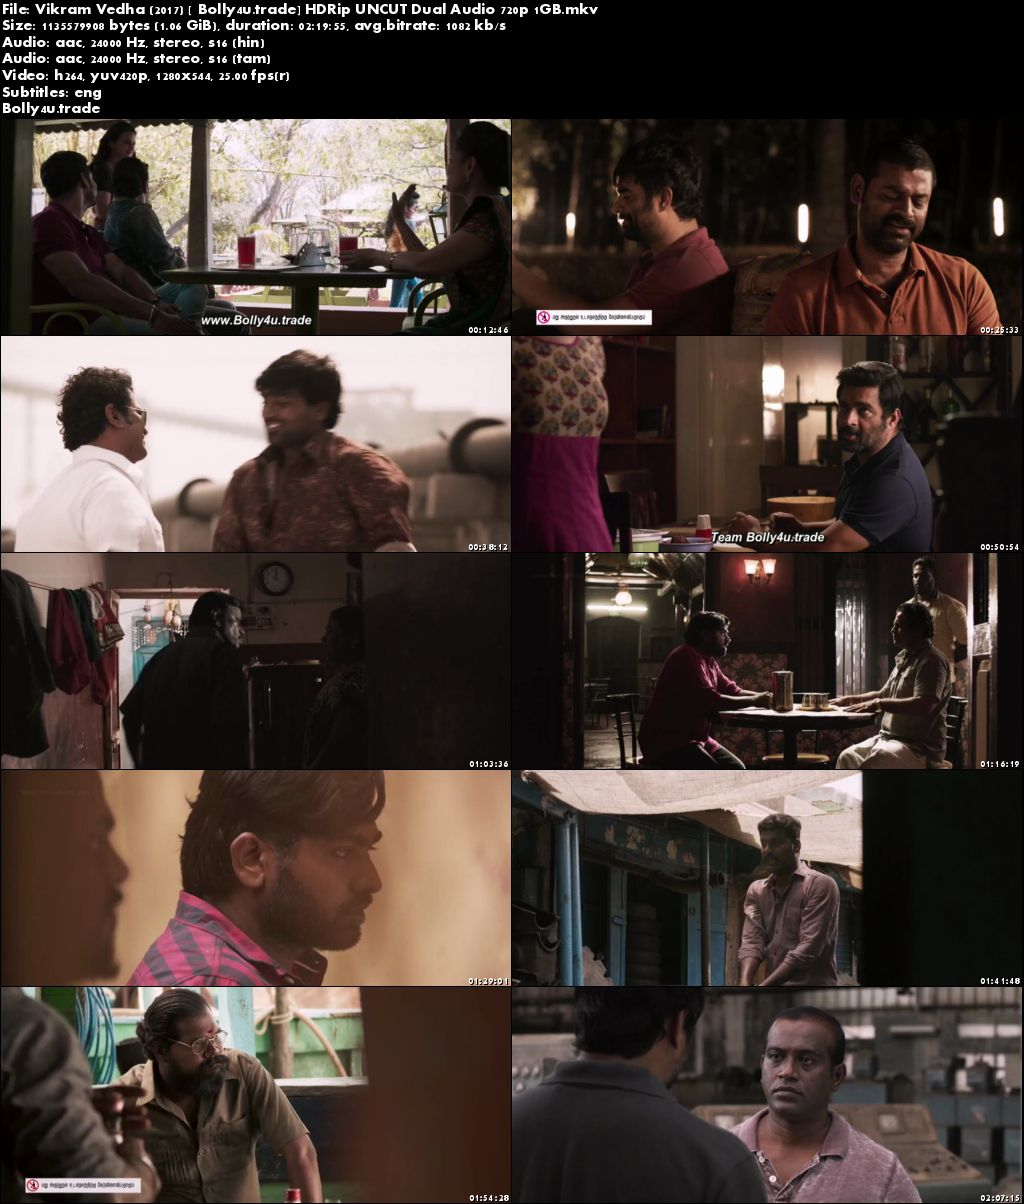 Vikram Vedha 2017 HDRip 400MB UNCUT Hindi Dual Audio 480p Download